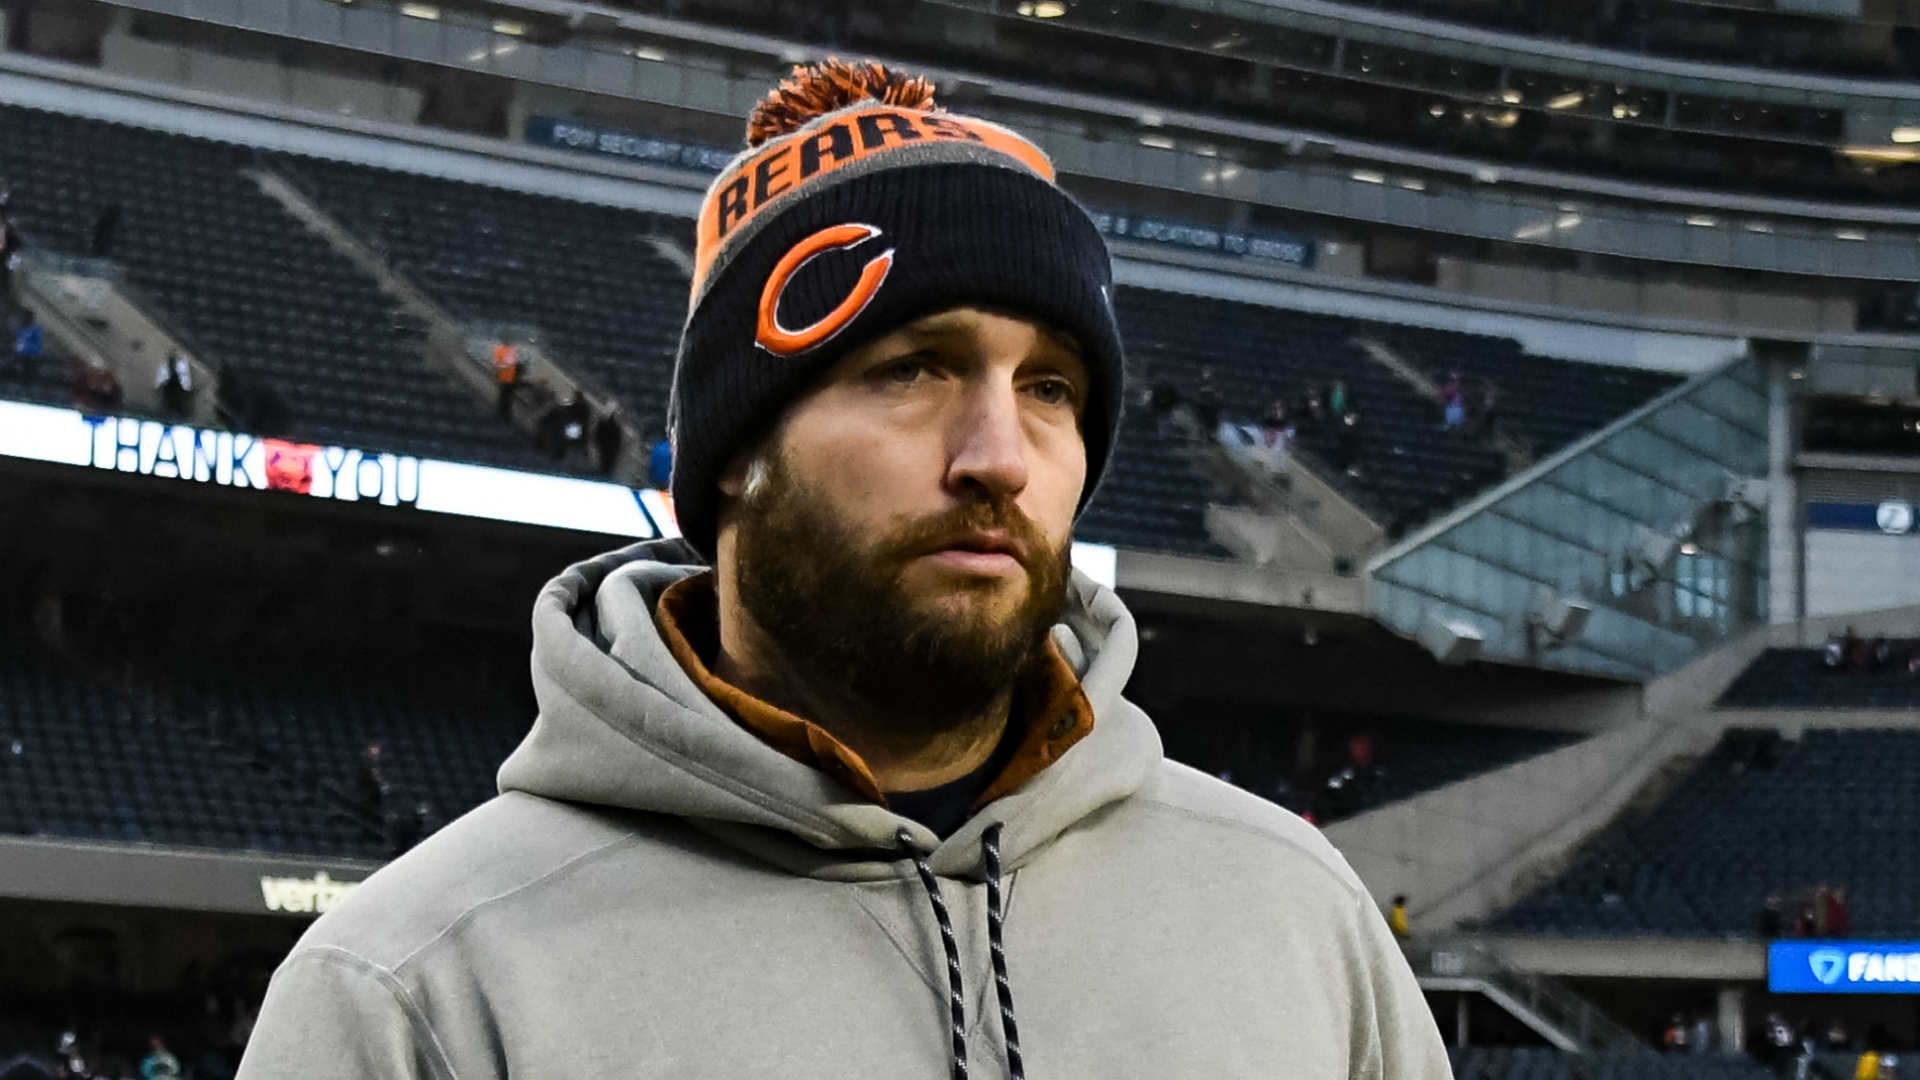 Chicago Bears officially release QB Jay Cutler, move into new era